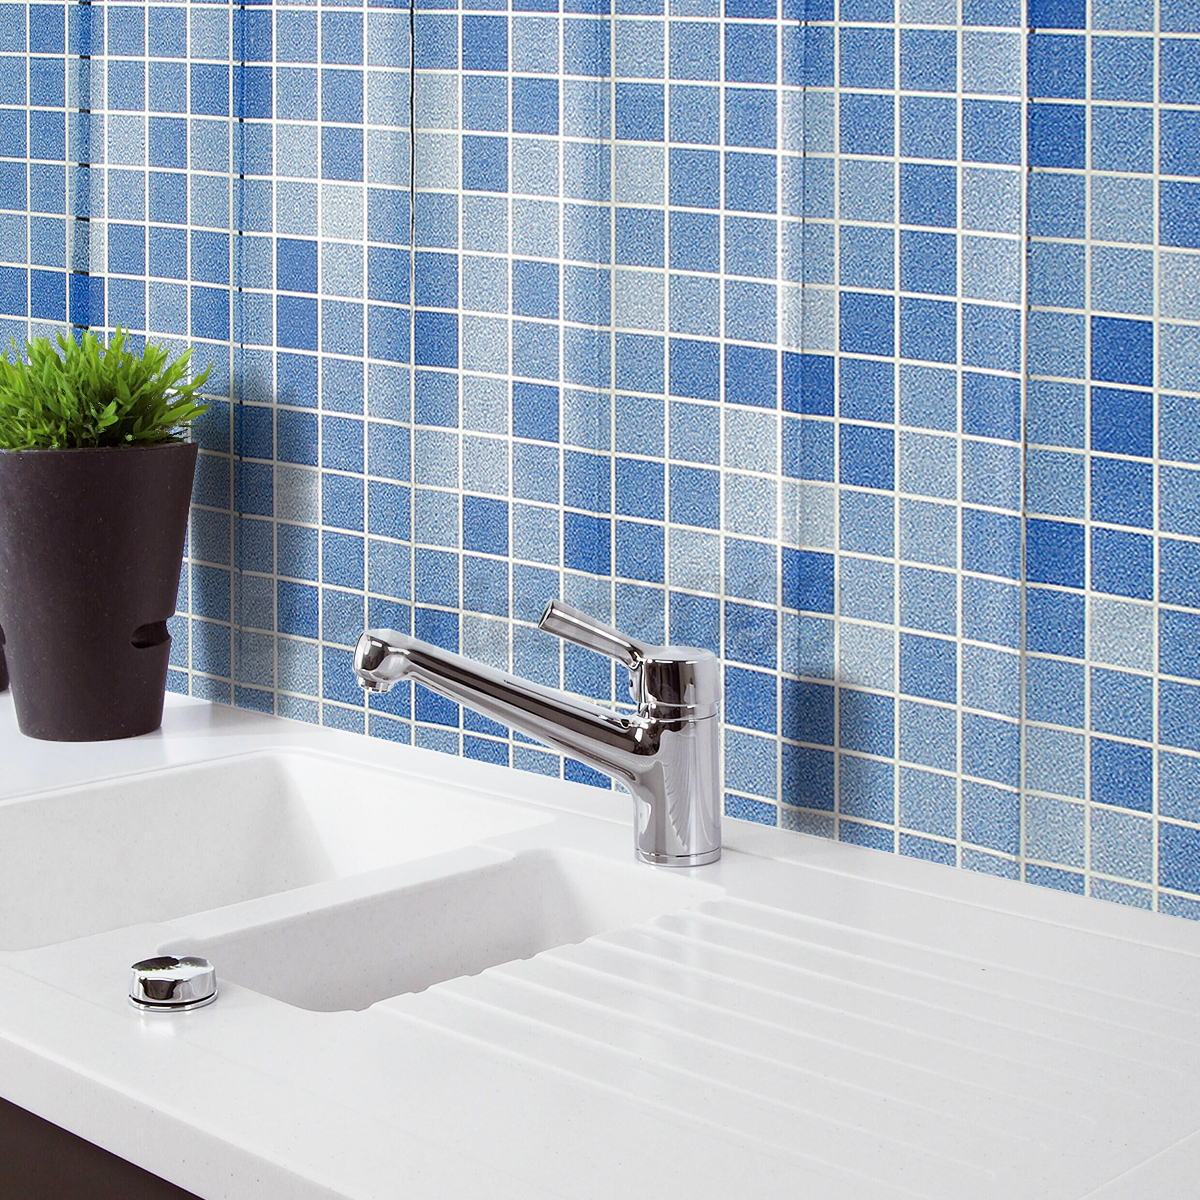 Self Adhesive Bathroom Wall Tiles: Self-adhesive 3D Mosaic Wall Paper Sticker Tile Floor